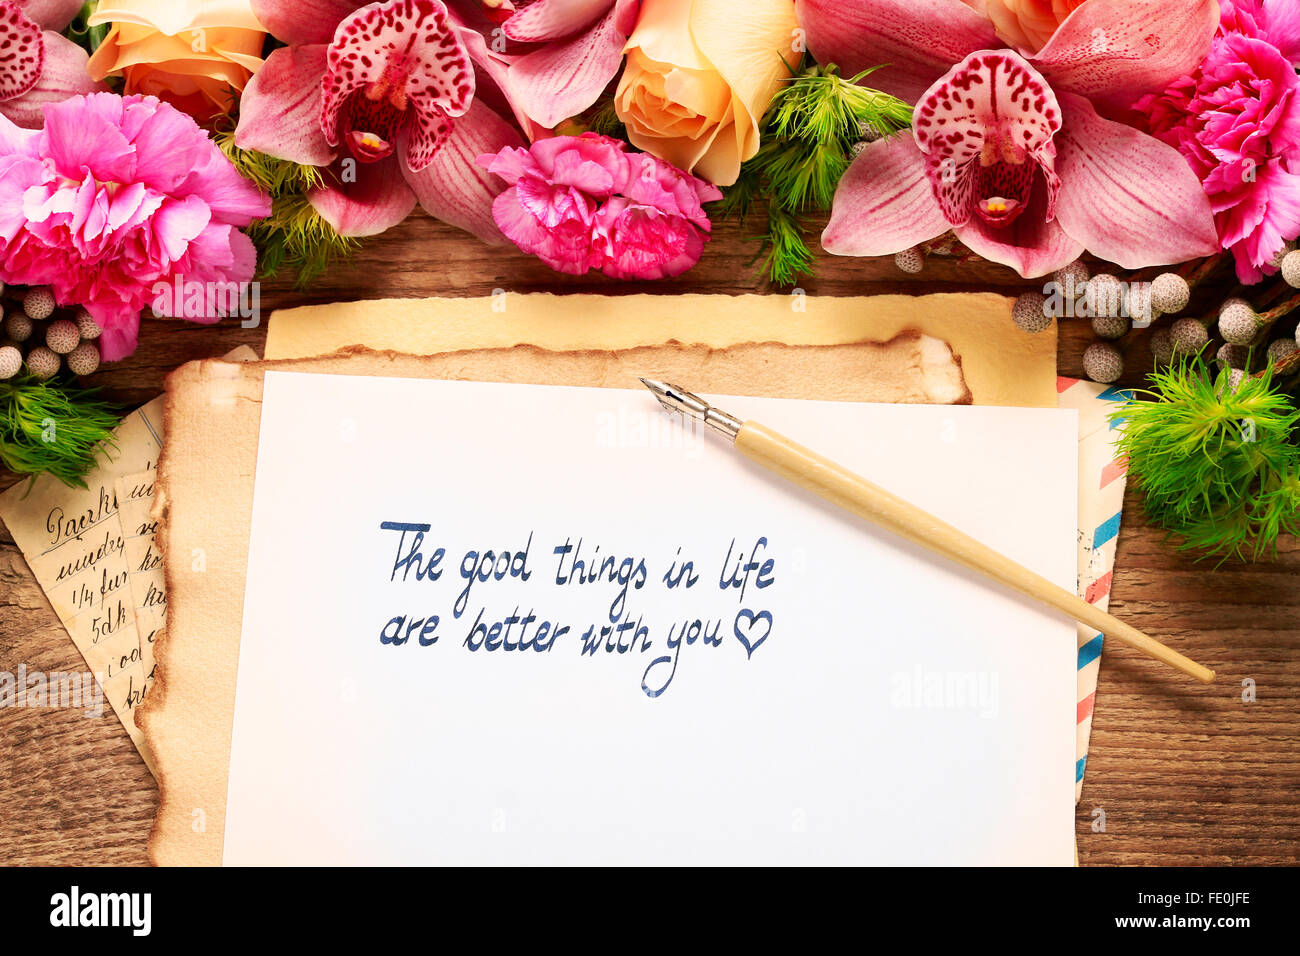 Floral arrangement with orchids, roses and handwritten words on vintage paper. - Stock Image